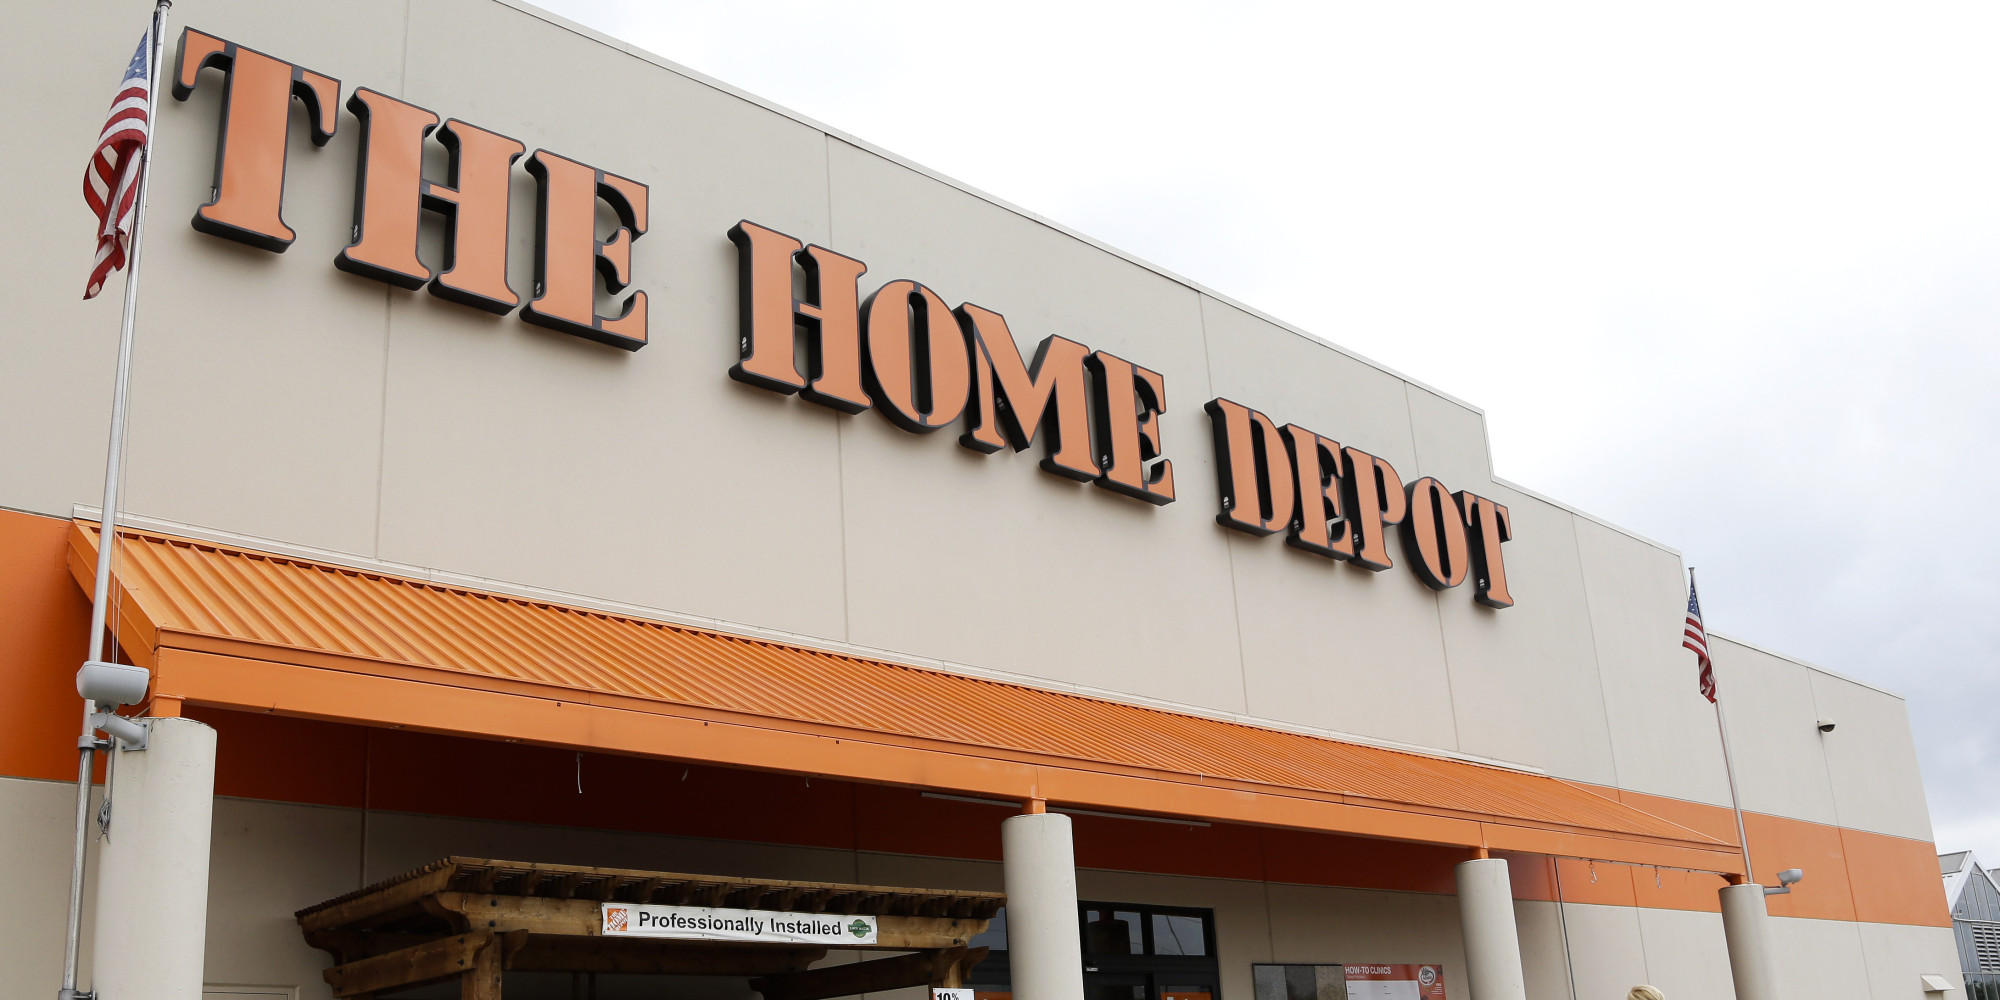 Home Depot Hack Is Letting Criminals Drain Money From People's Bank Accounts | HuffPost